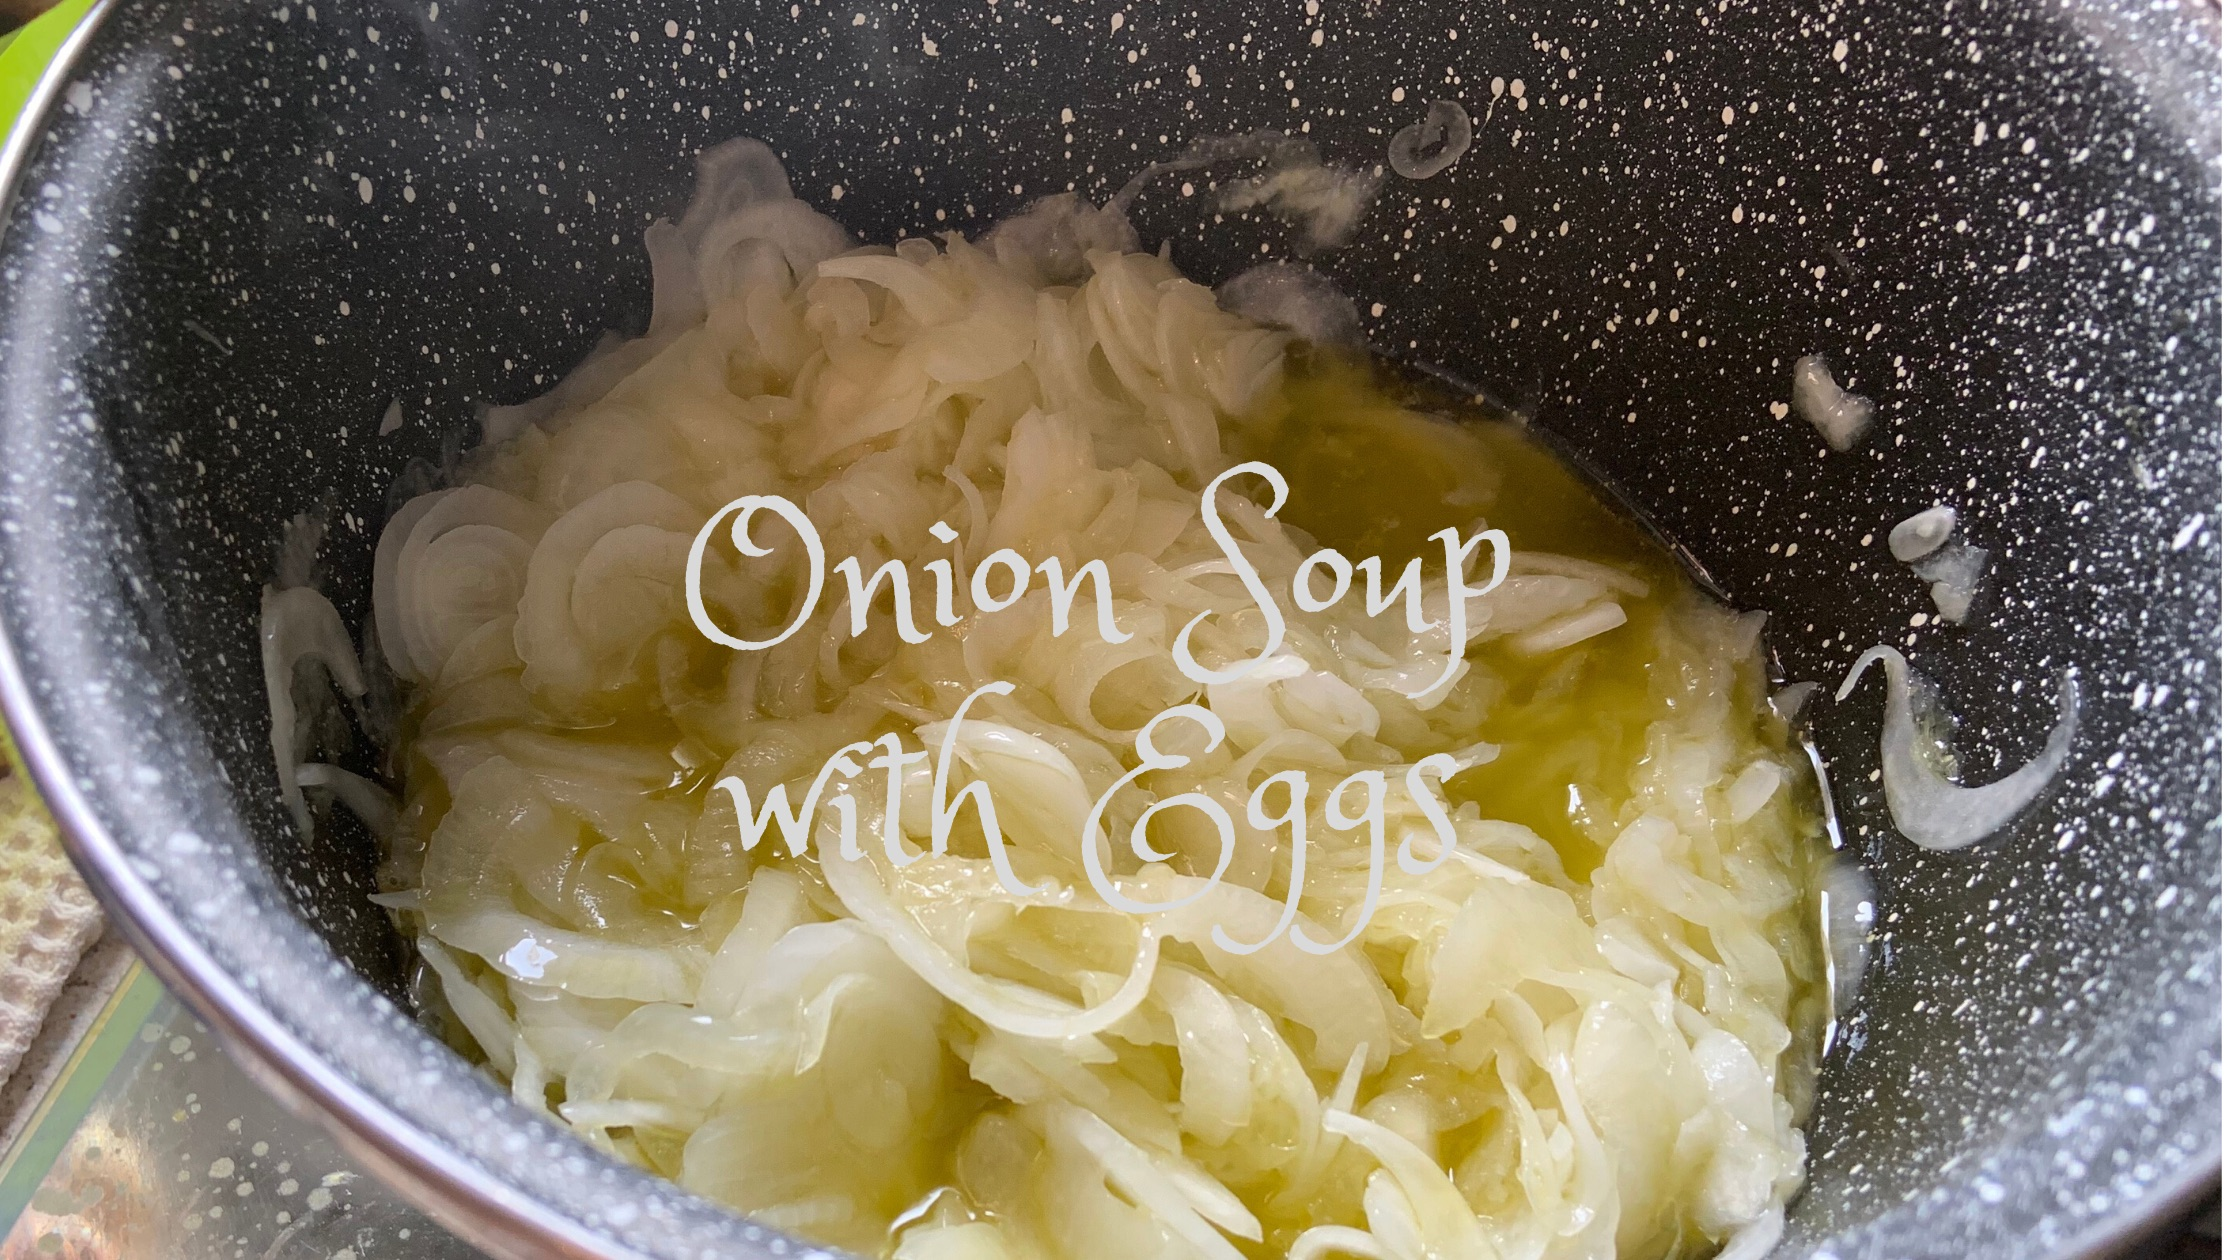 Recipe from Angela's Kitchen: Onion Soup with Eggs